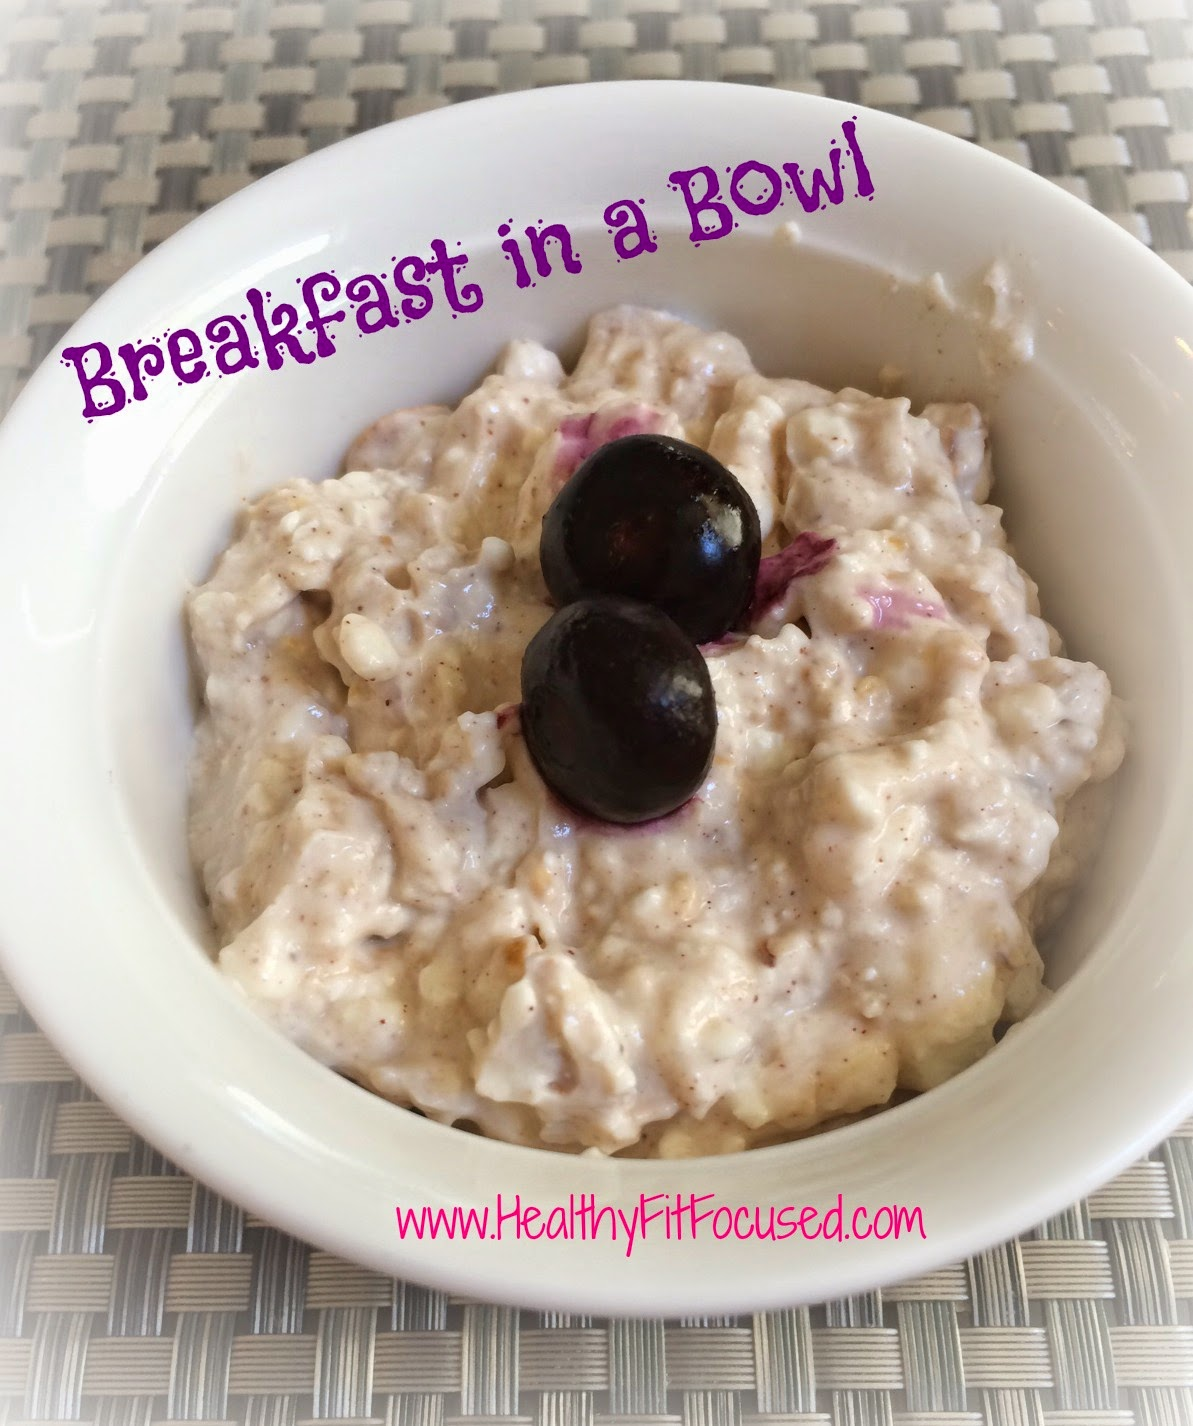 Healthy Breakfast, www.HealthyFitFocused.com